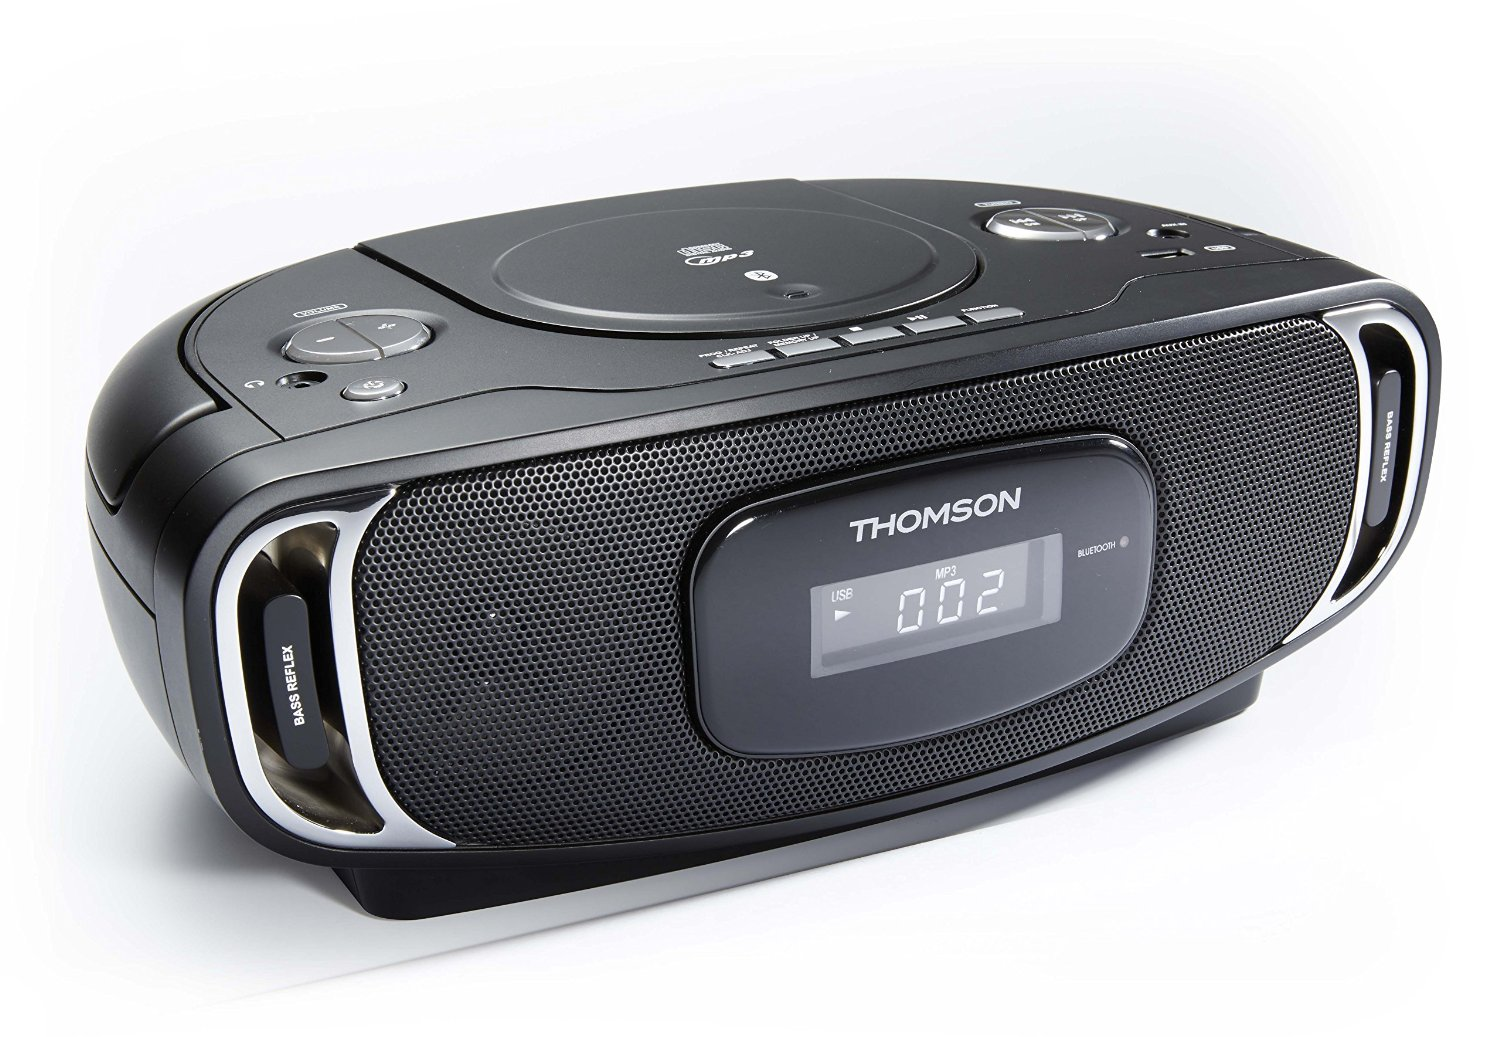 thomson tragbares radio cd mp3 player portable usb fm bluetooth fernbedienung ebay. Black Bedroom Furniture Sets. Home Design Ideas